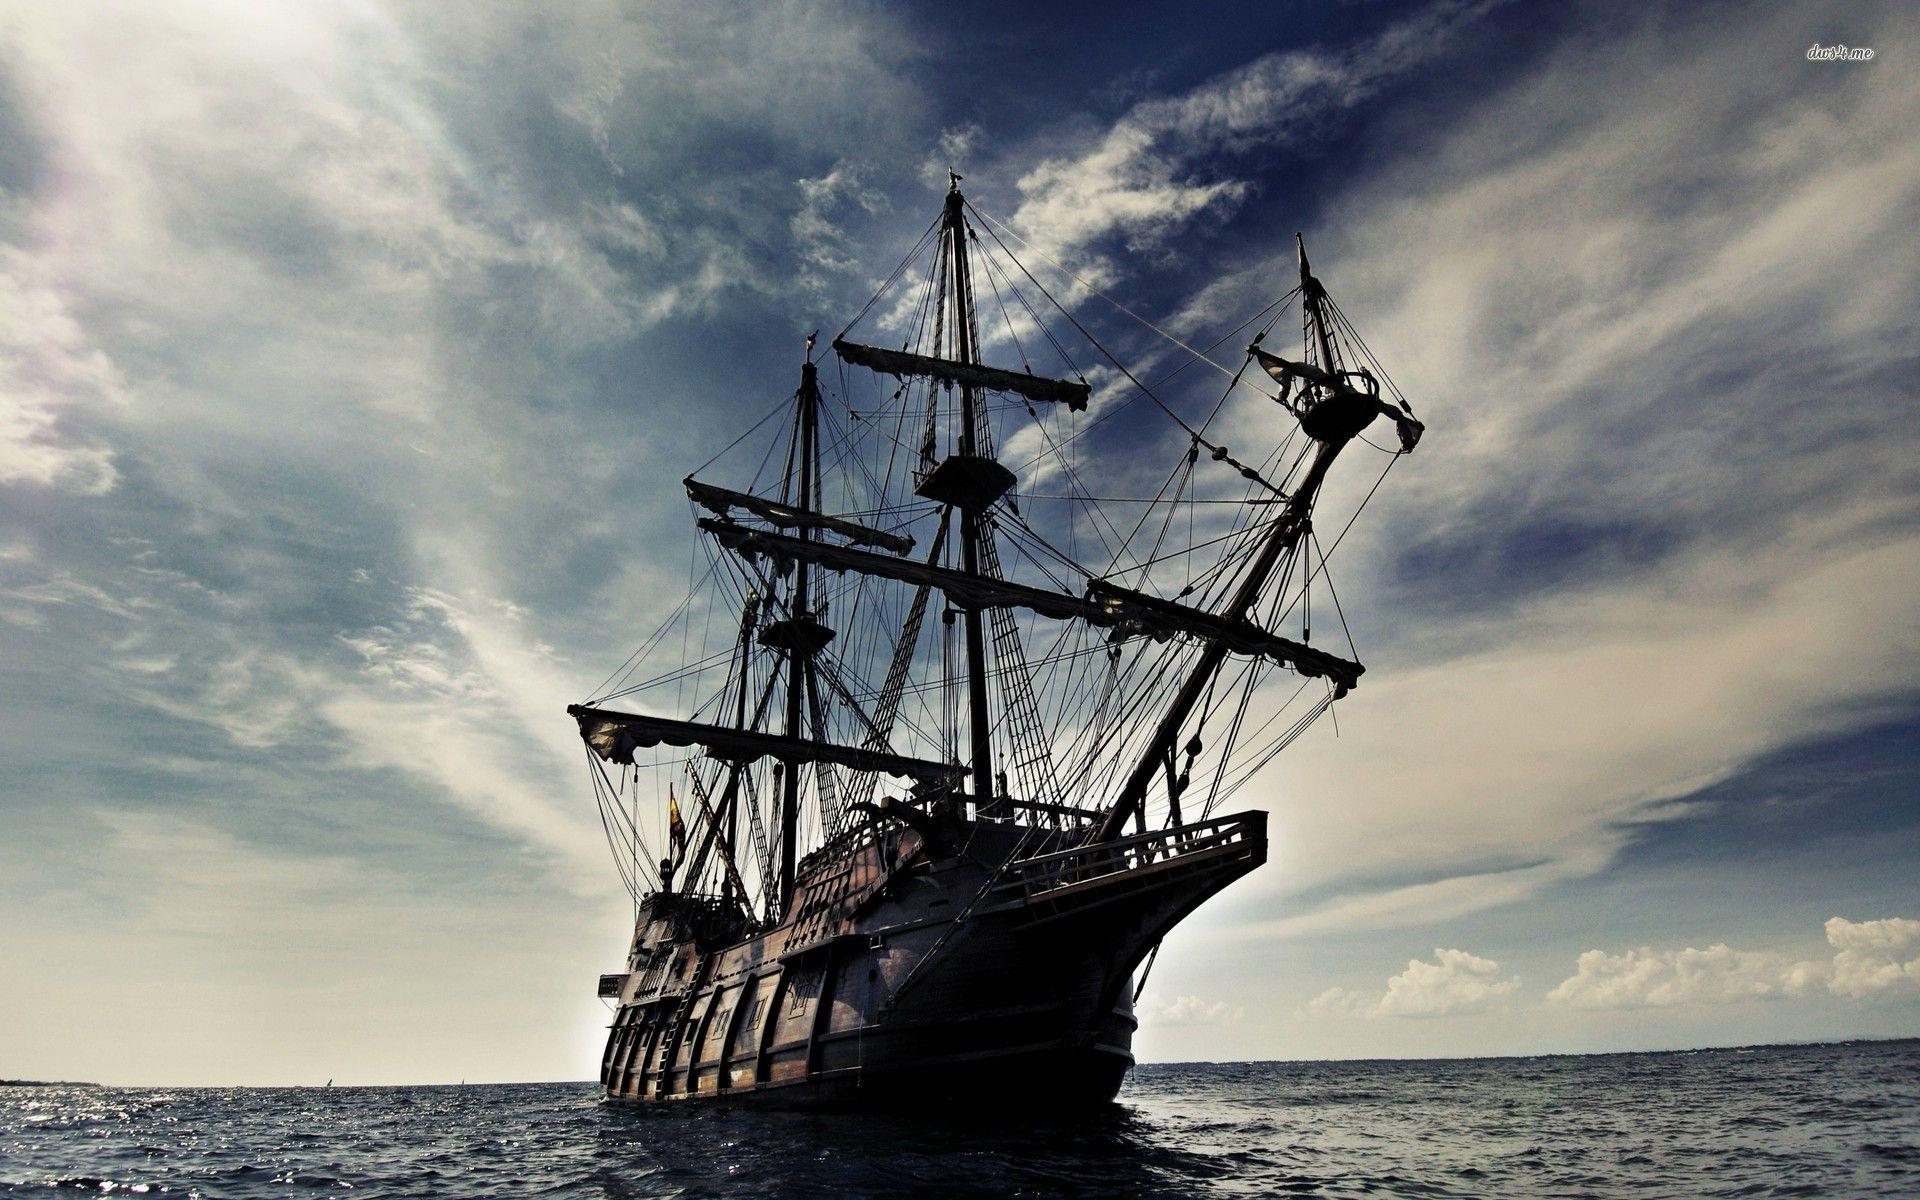 The Black Pearl Wallpaper